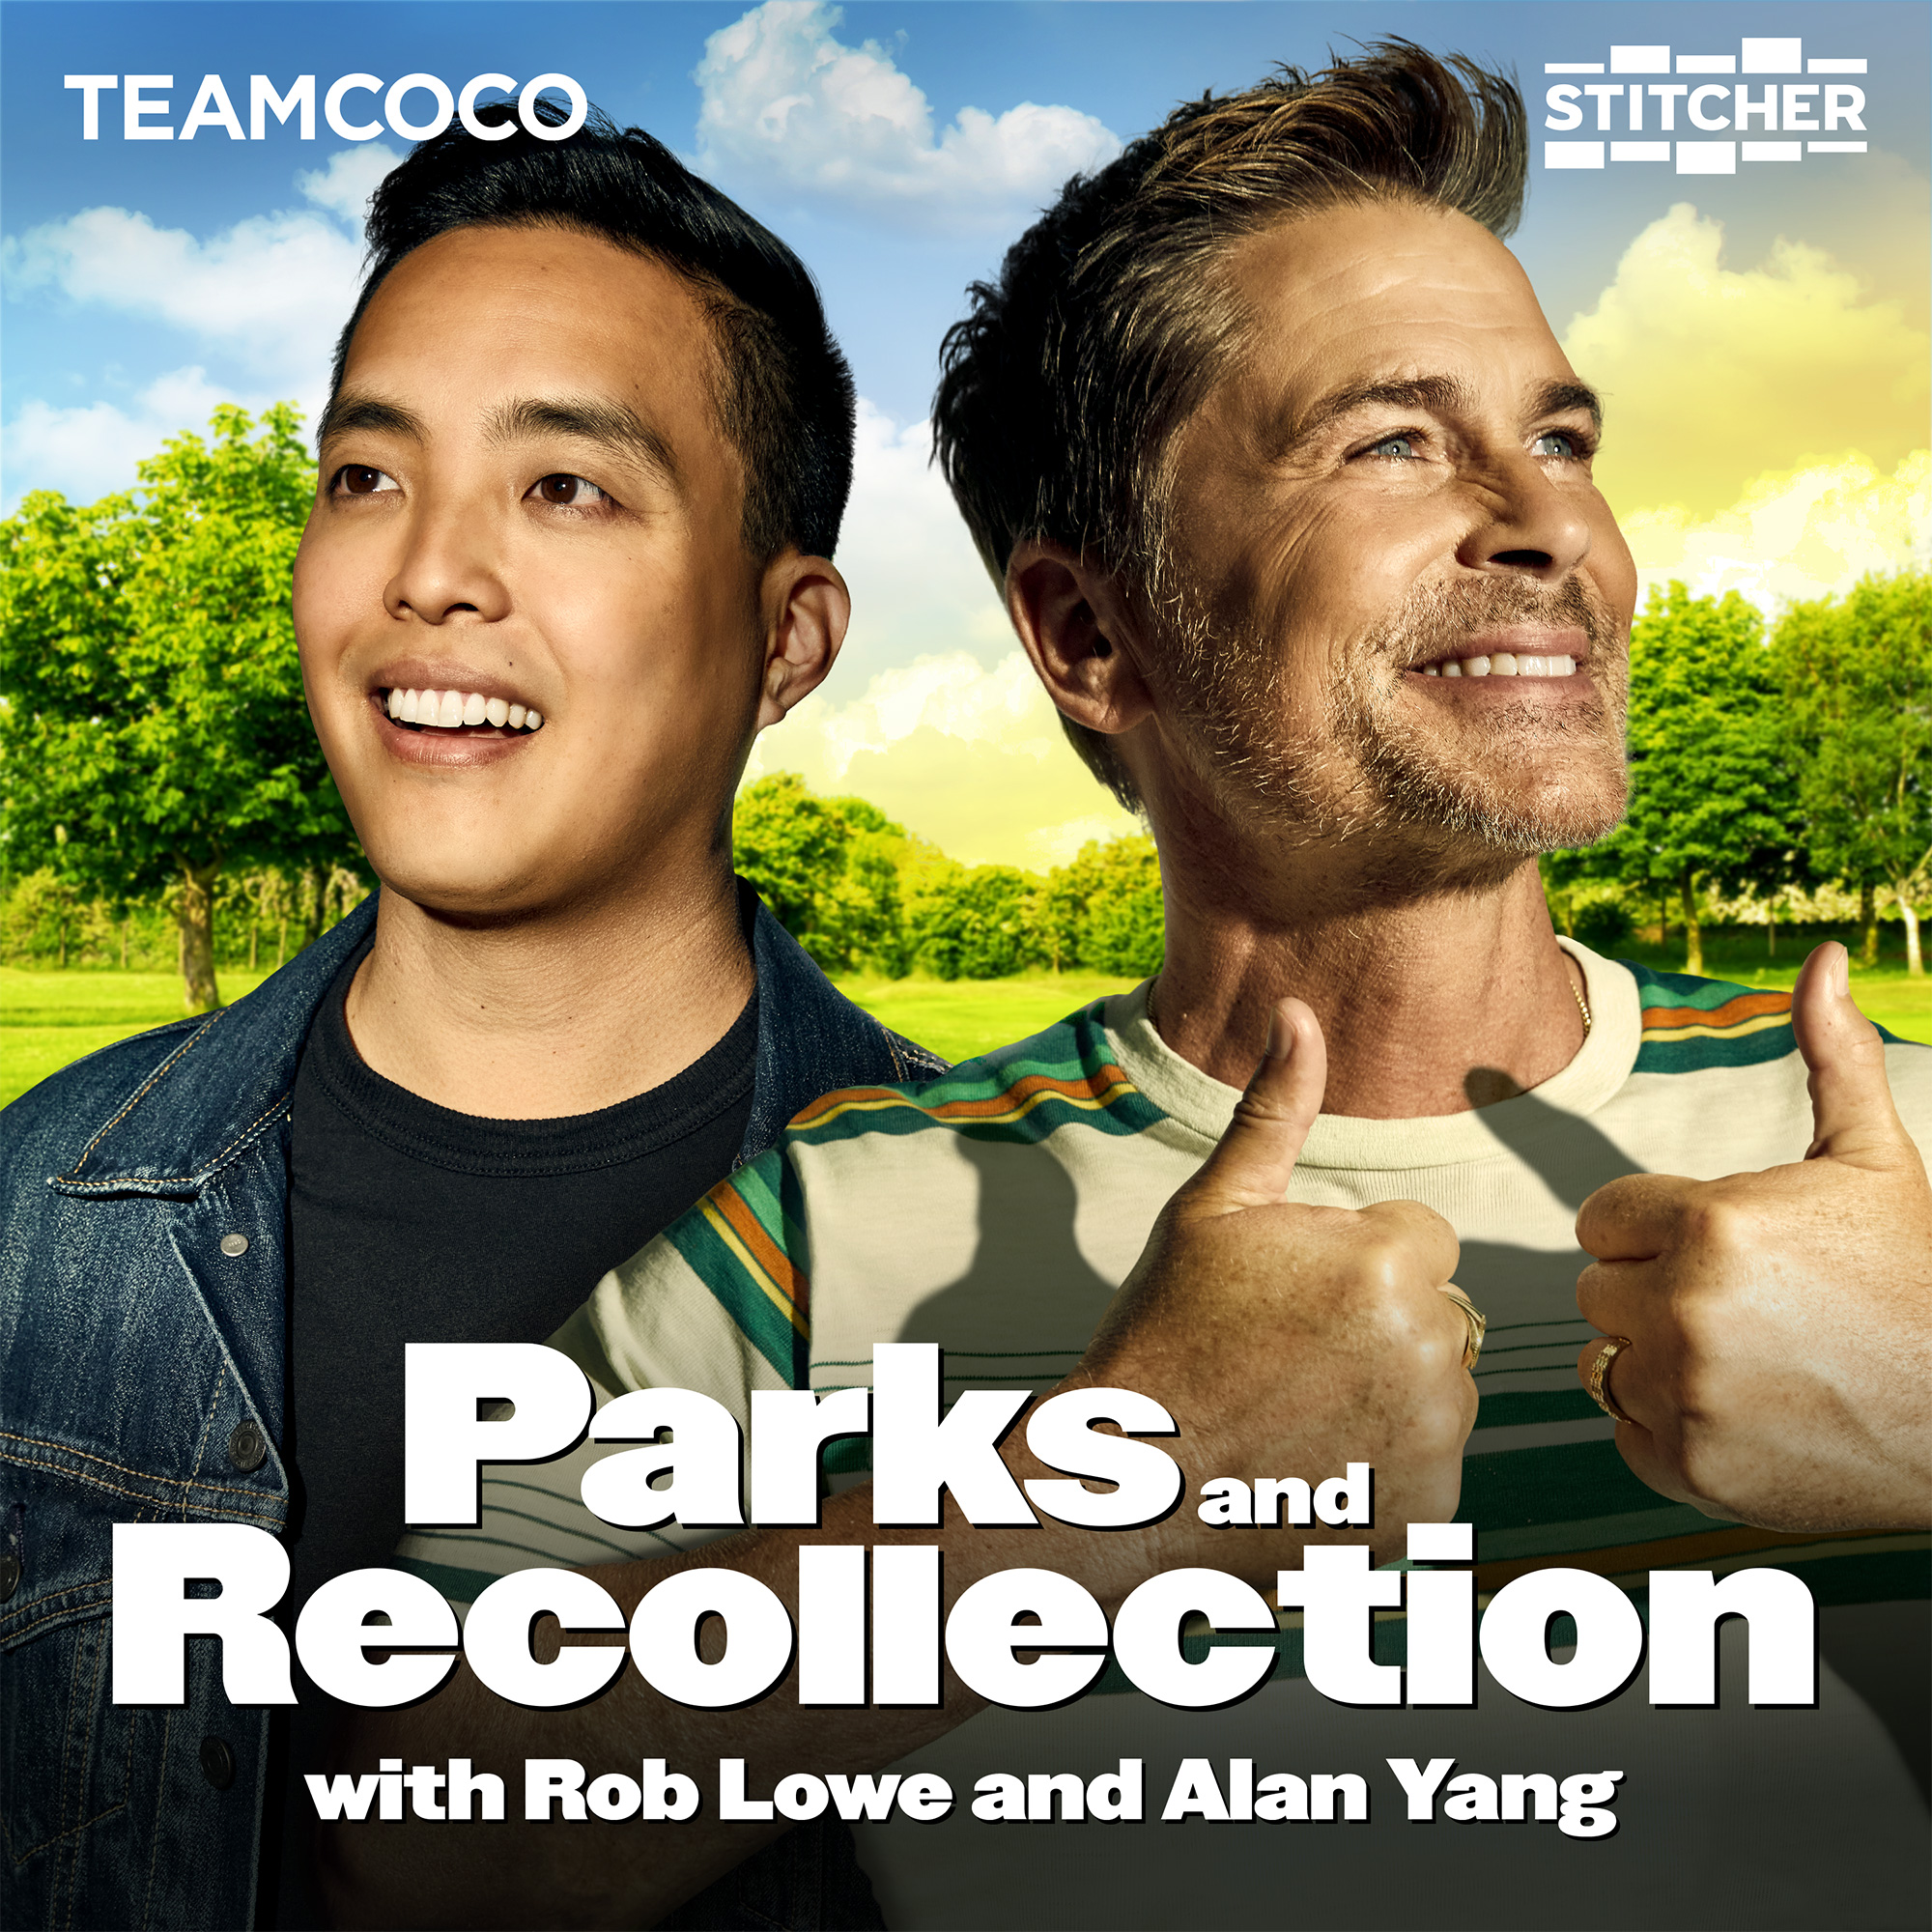 Parks and Recollection podcast